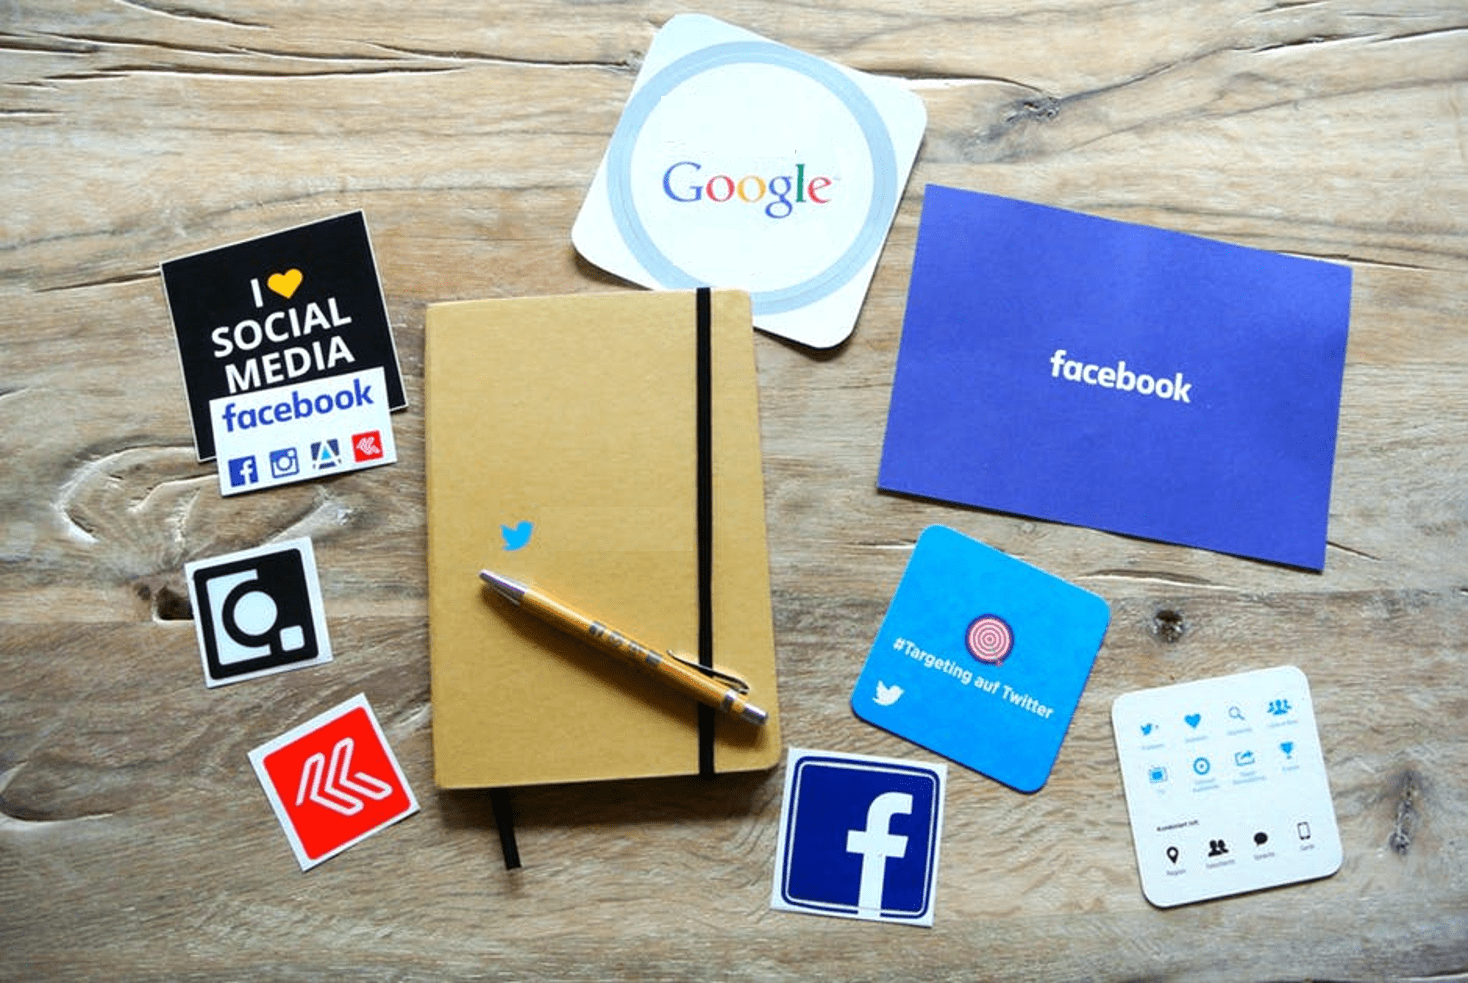 Social media icons near a notebook